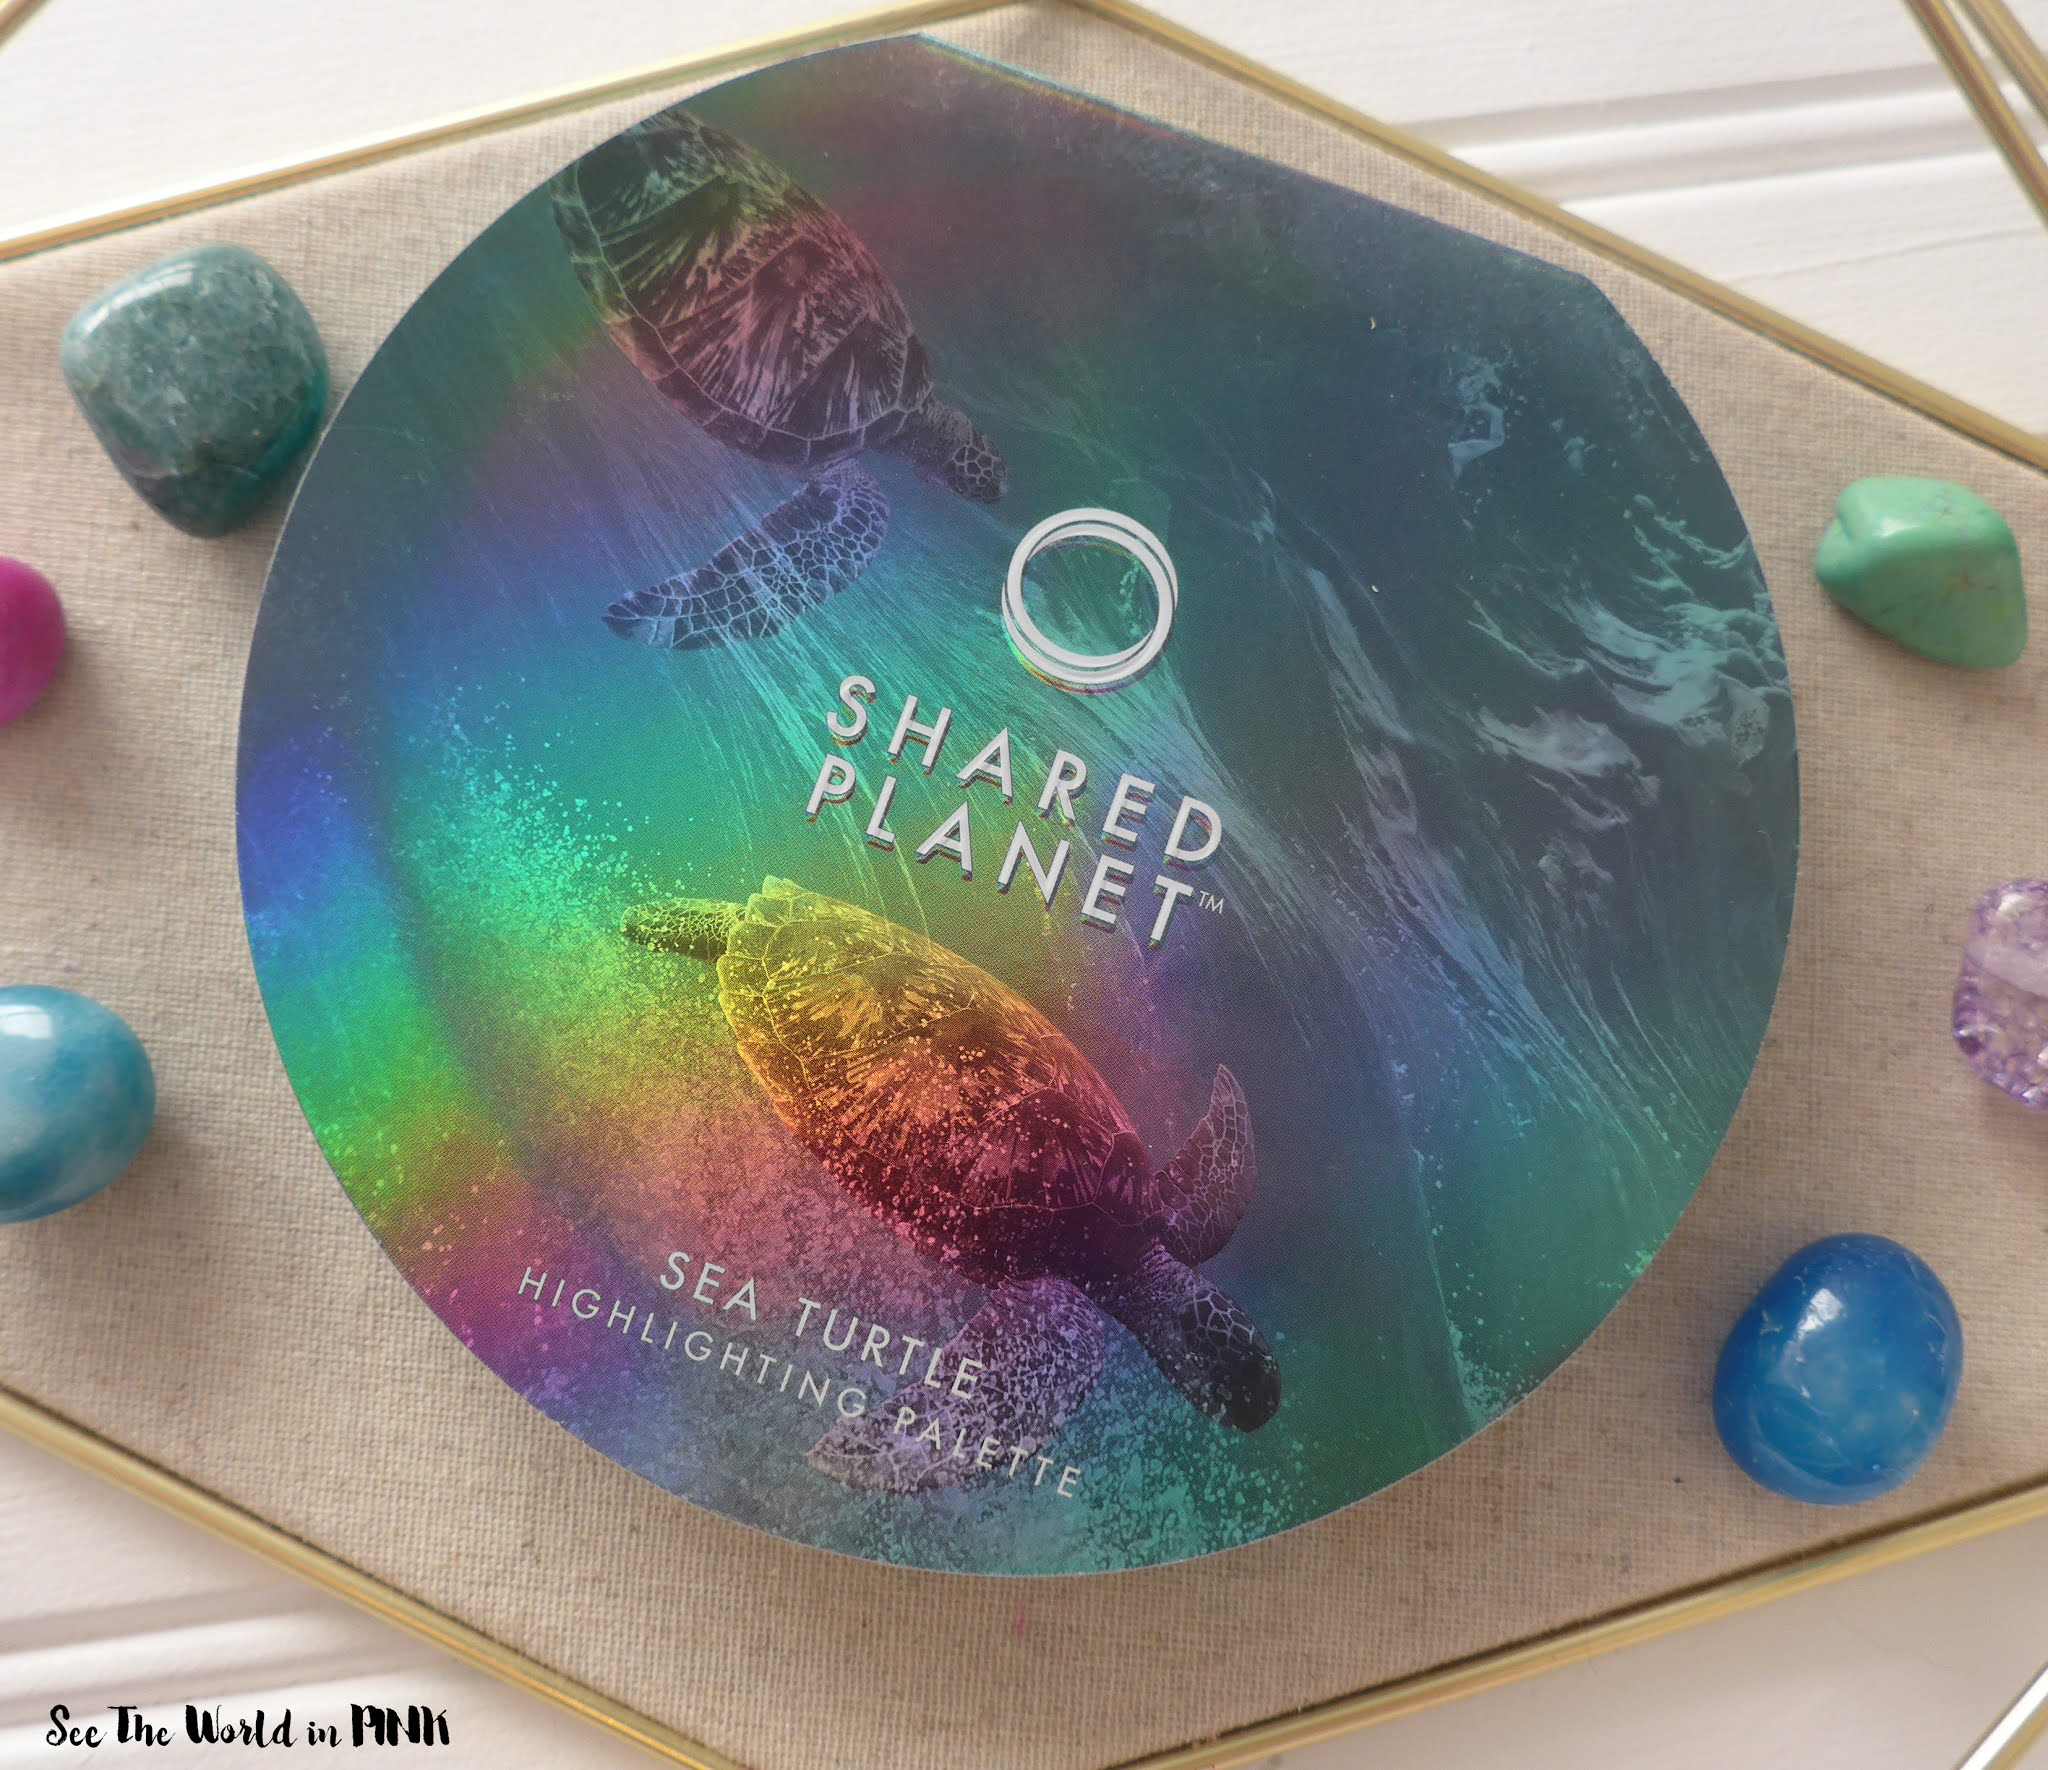 Shared Planet Sea Turtle Sea Turtle Highlighting Palette